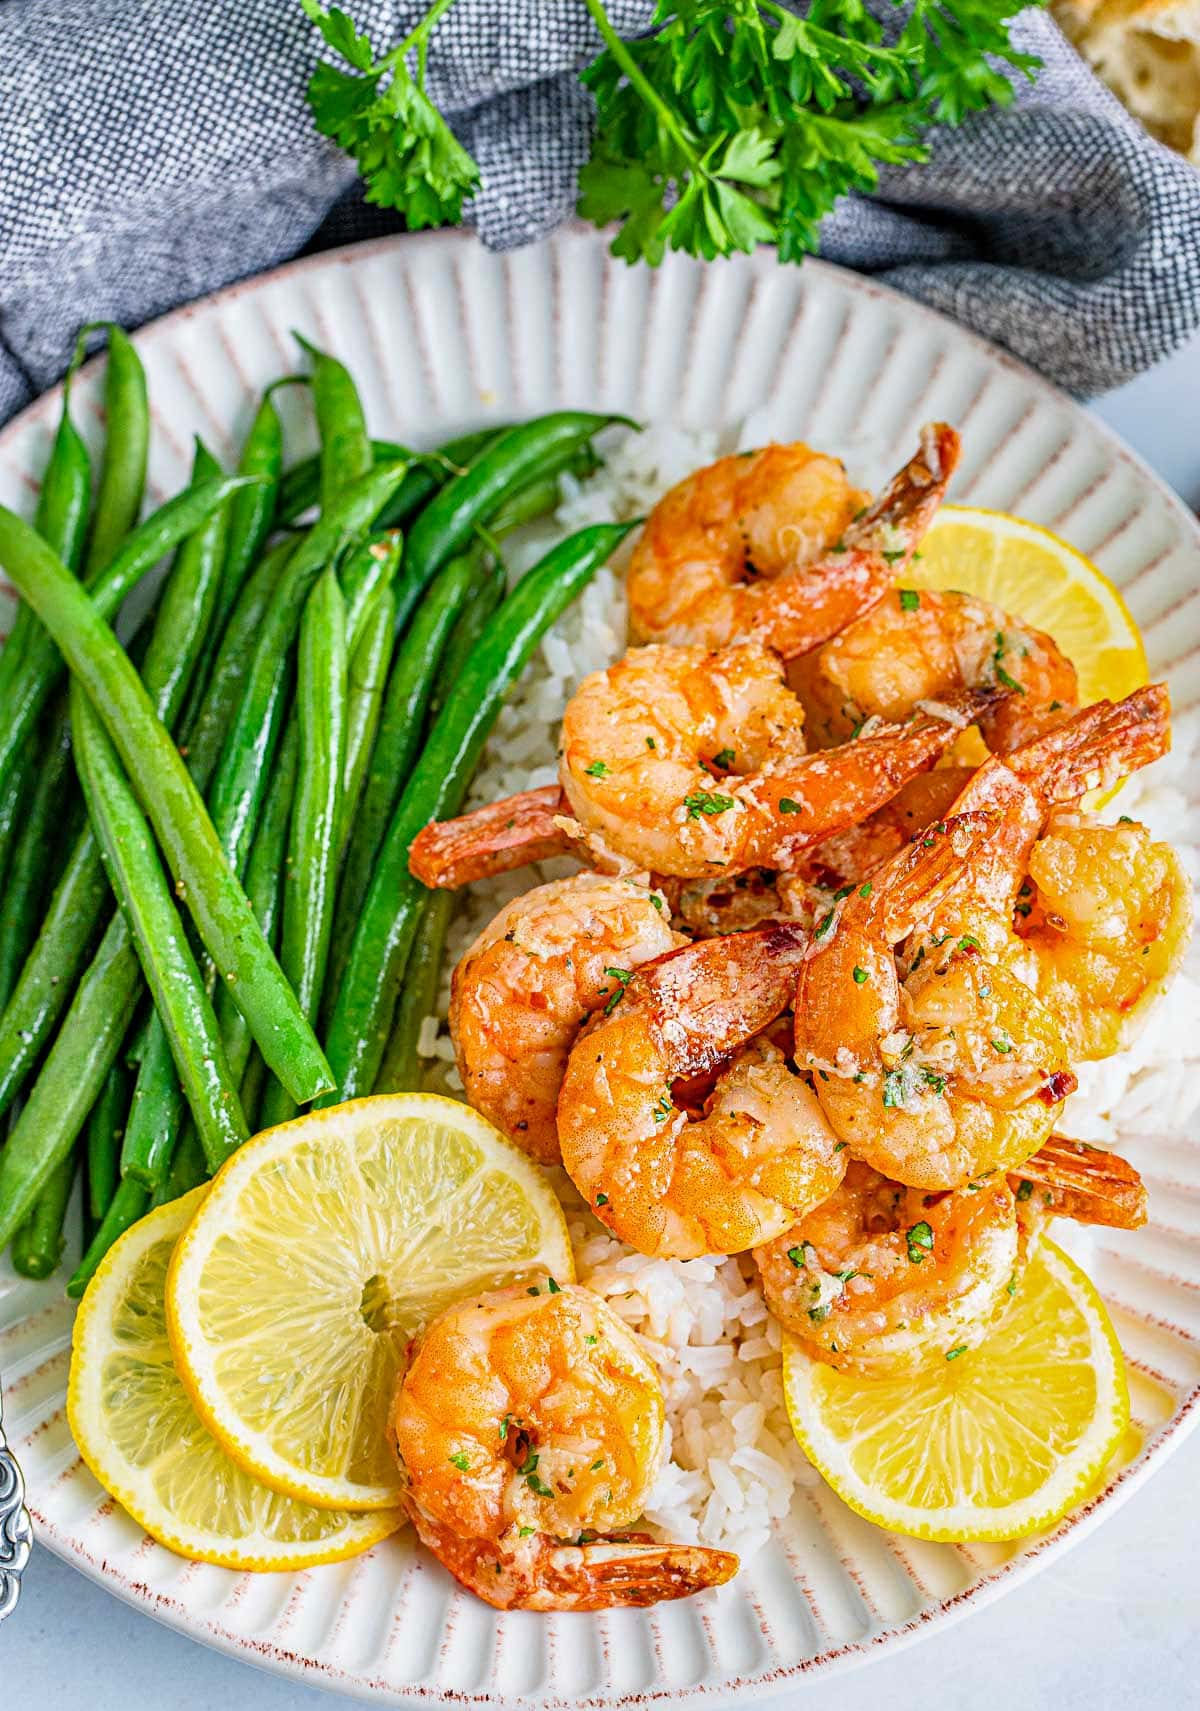 plate of air fryer shrimp topped with a garlic herb butter sauce.